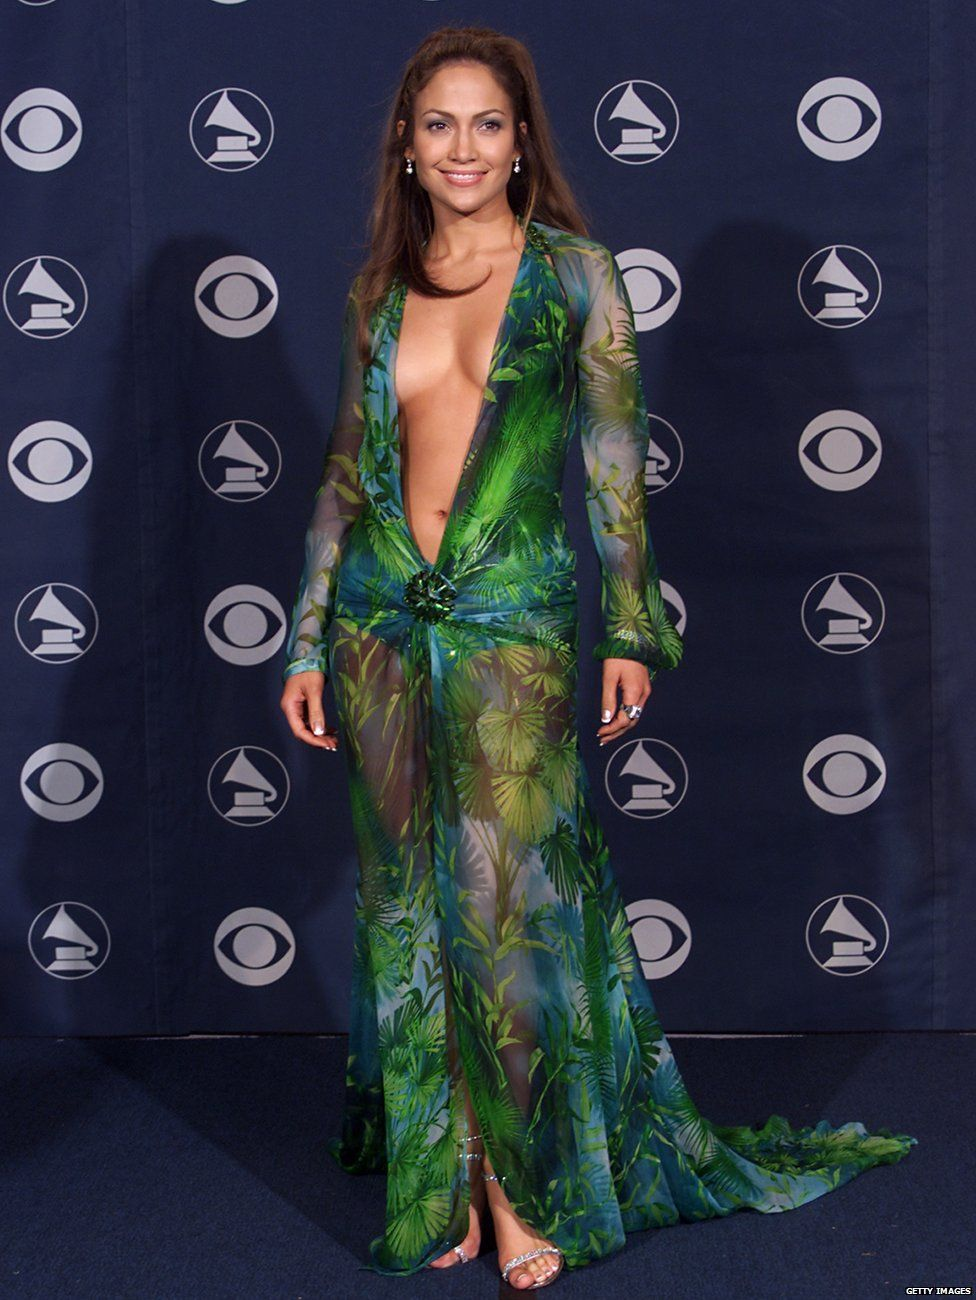 How A Jennifer Lopez Dress Helped Lead To The Launch Of Google Images